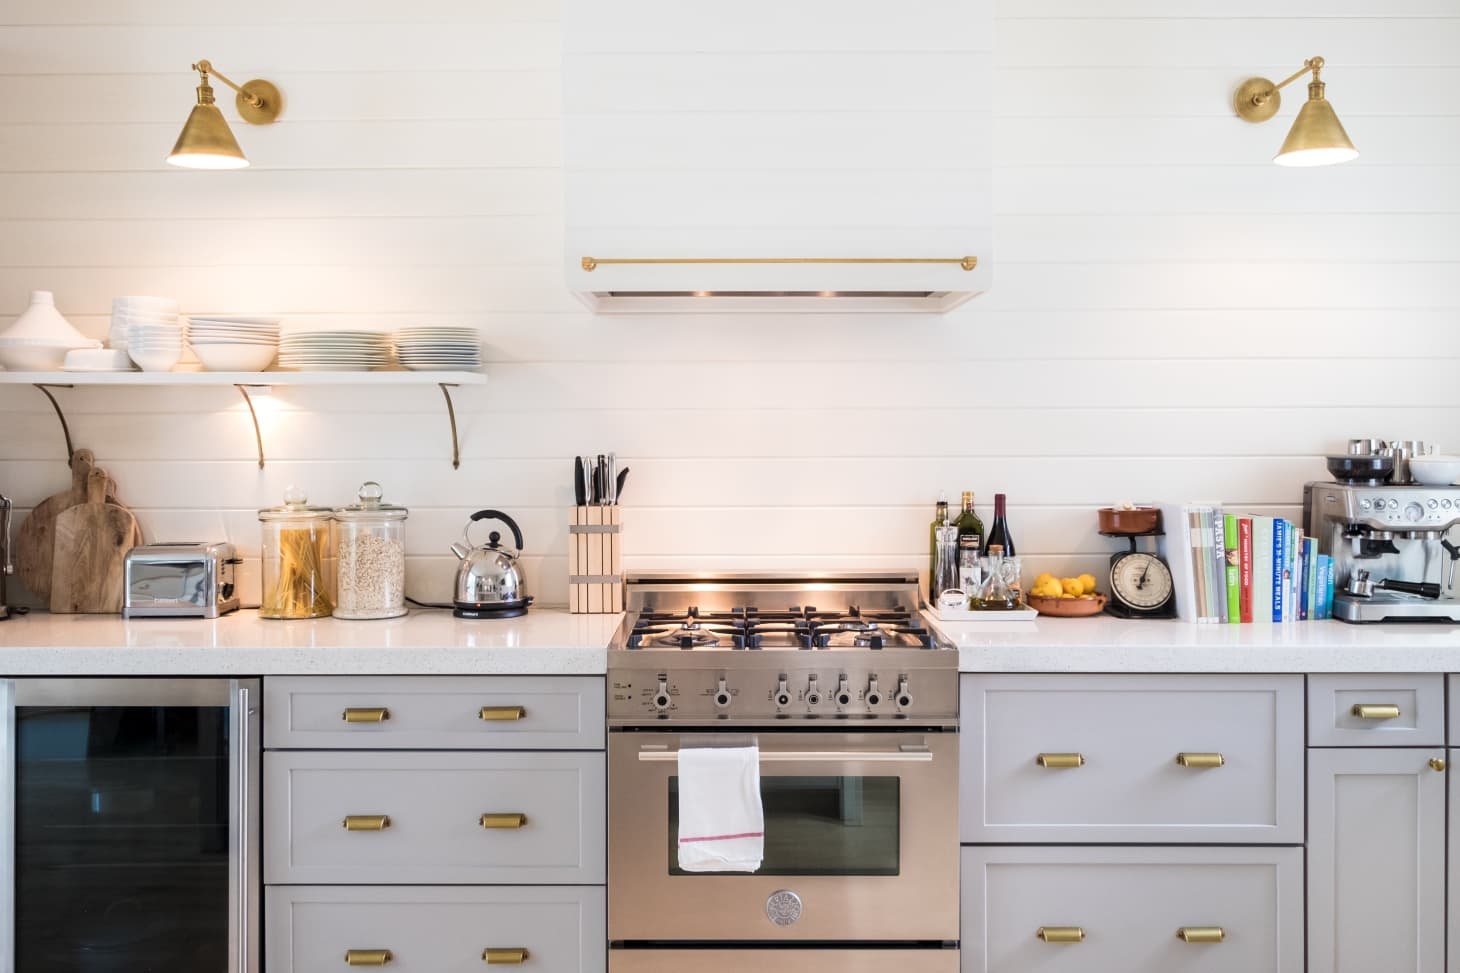 Surprising The Pros And Cons Of New And Vintage Ranges Kitchn Download Free Architecture Designs Itiscsunscenecom